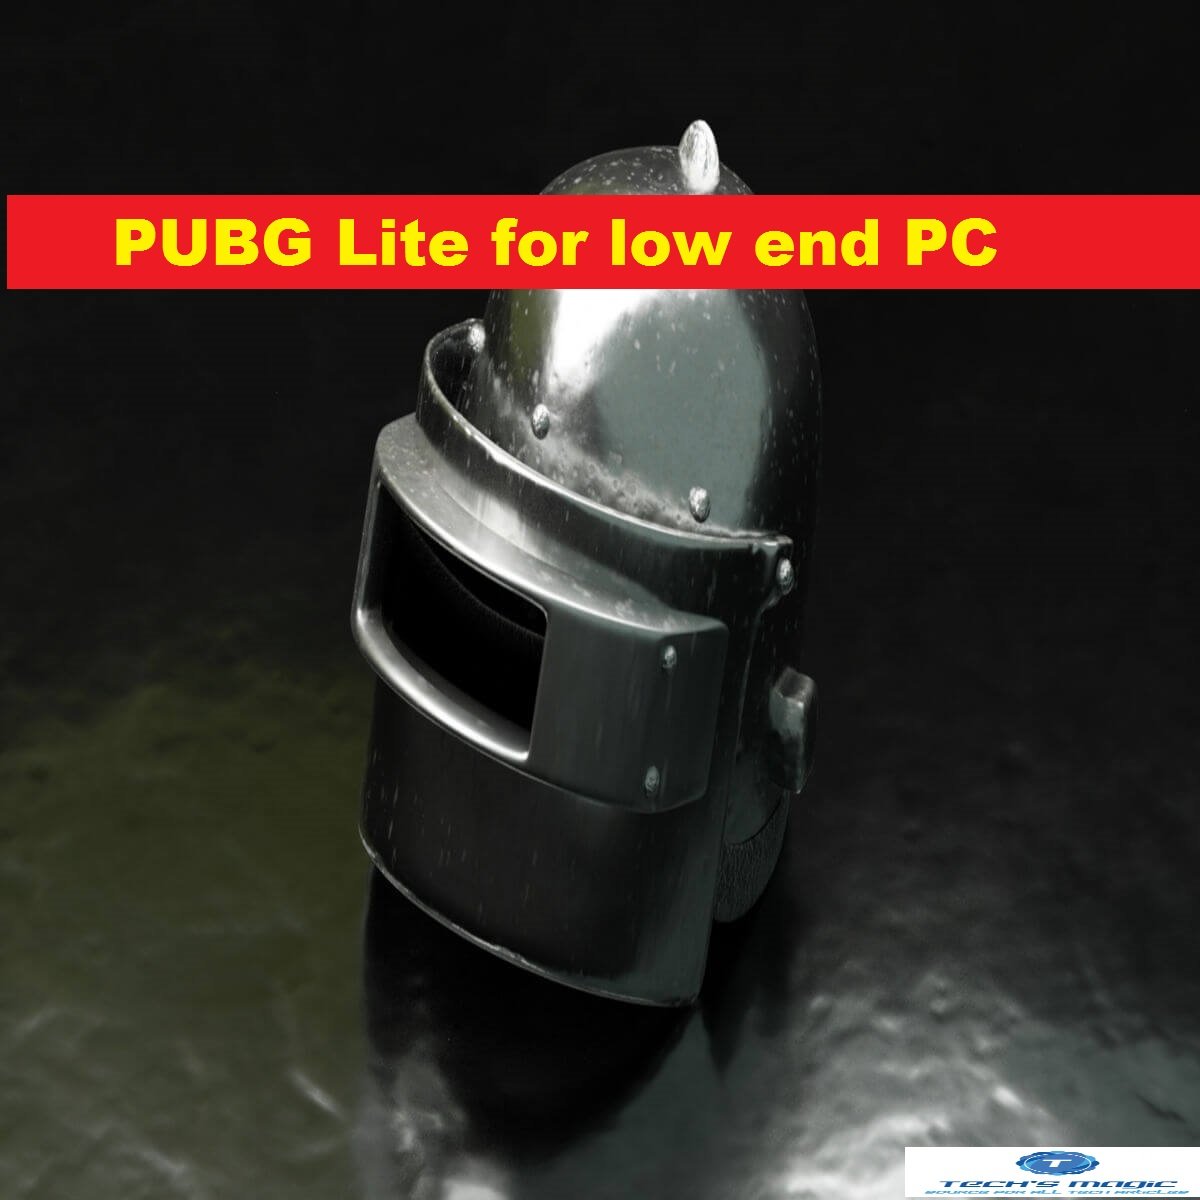 PUBG Lite available now for low-end PC with 4GB RAM minimum